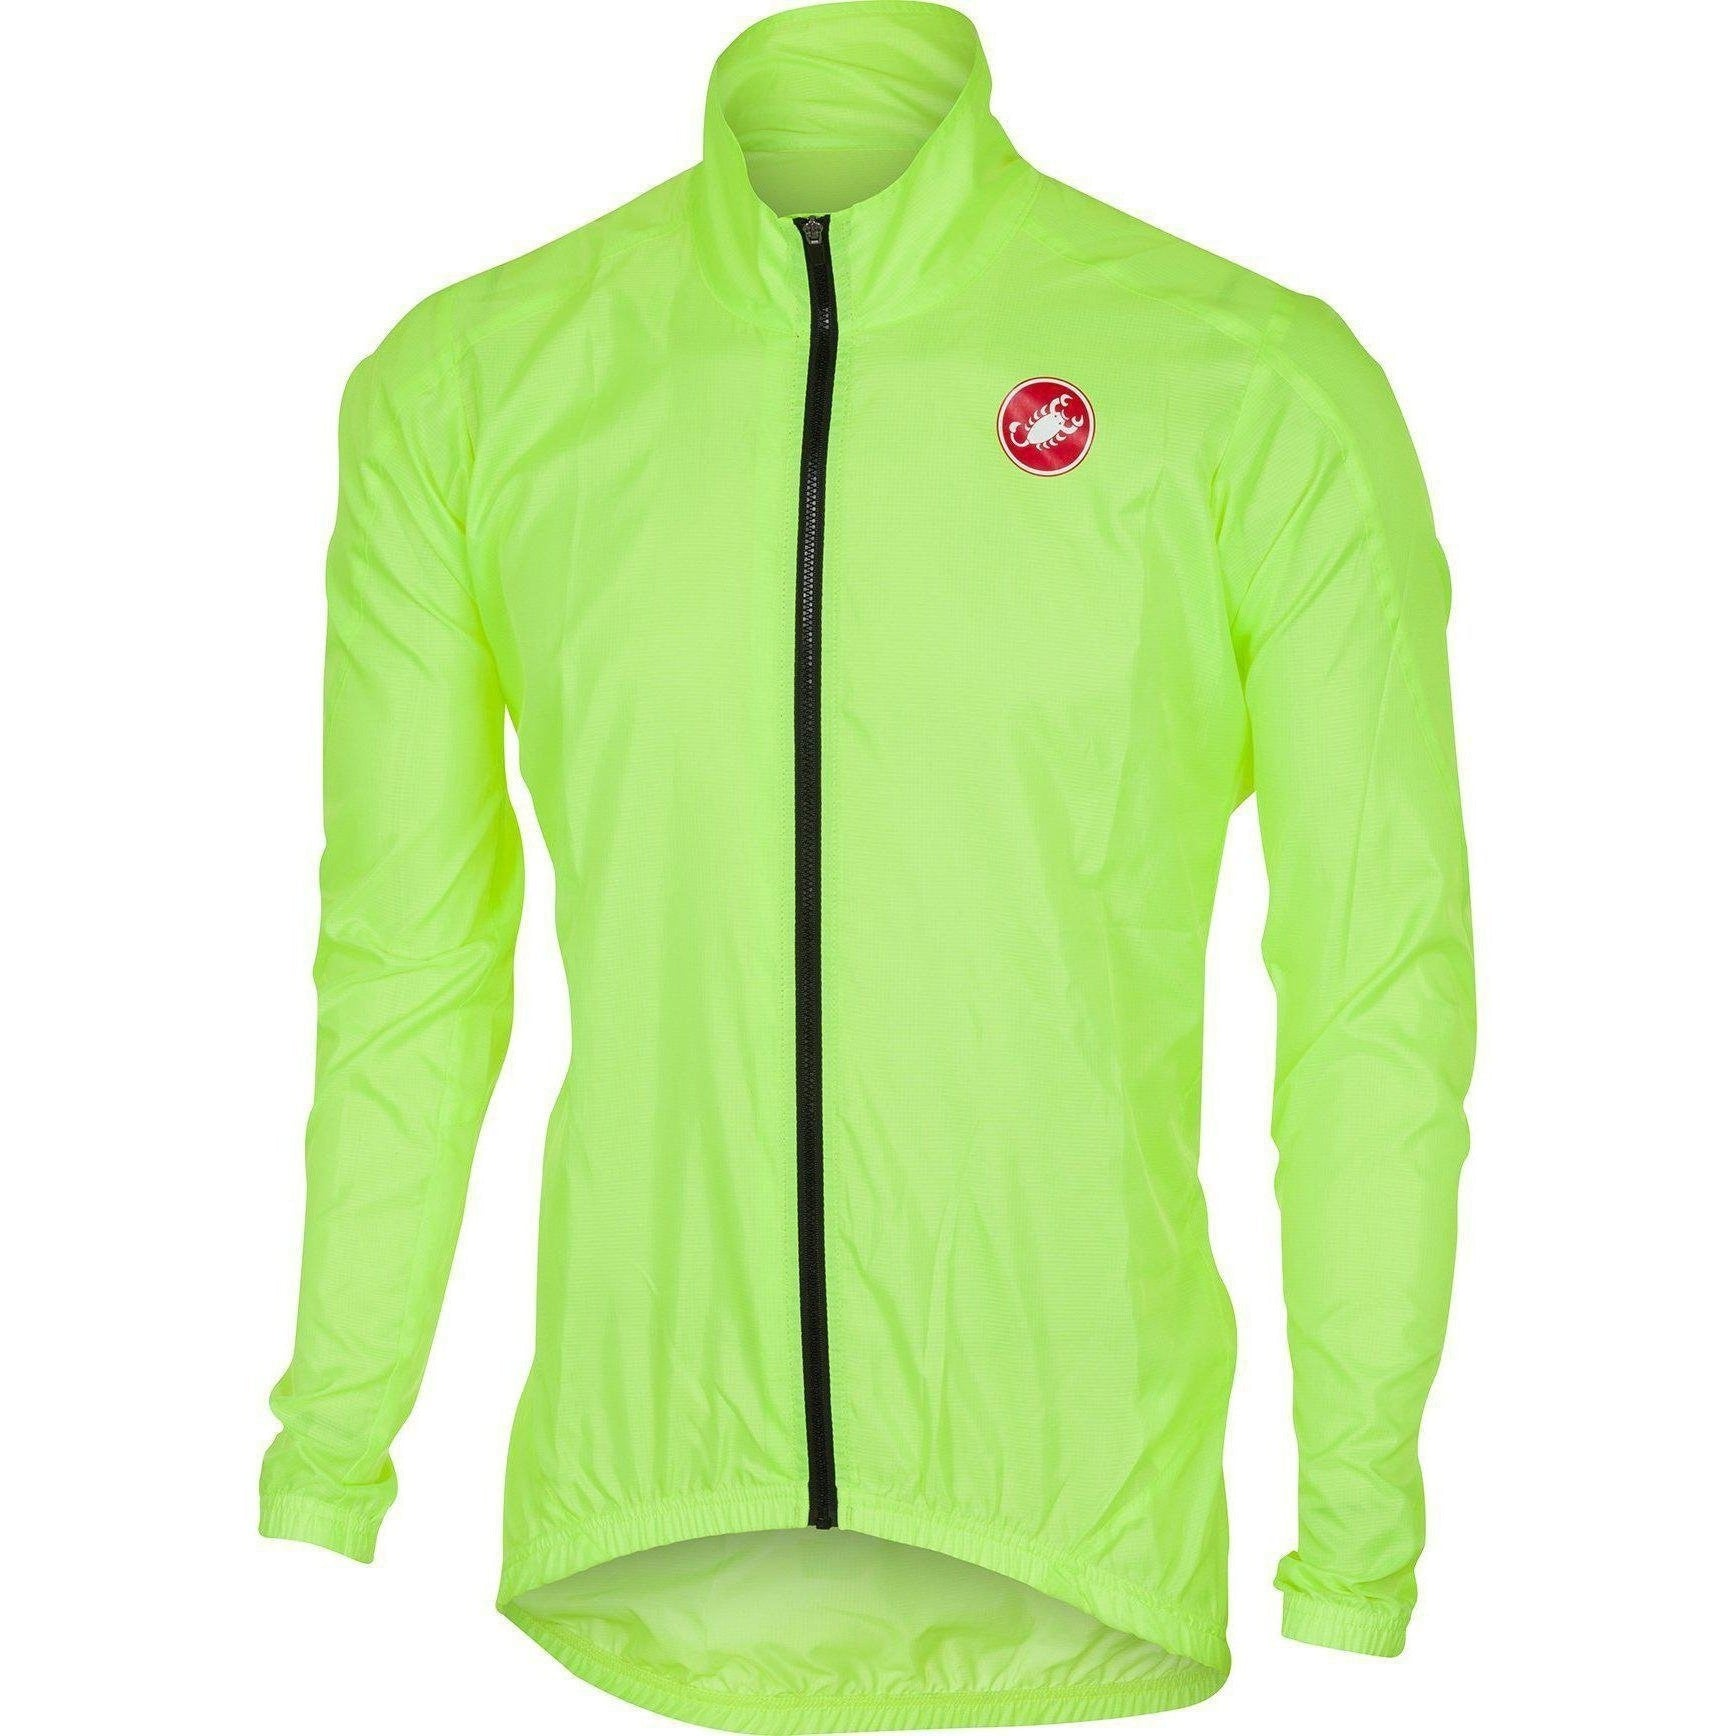 Castelli-Castelli Squadra ER Jacket-Yellow Fluo-S-CS175070322-saddleback-elite-performance-cycling